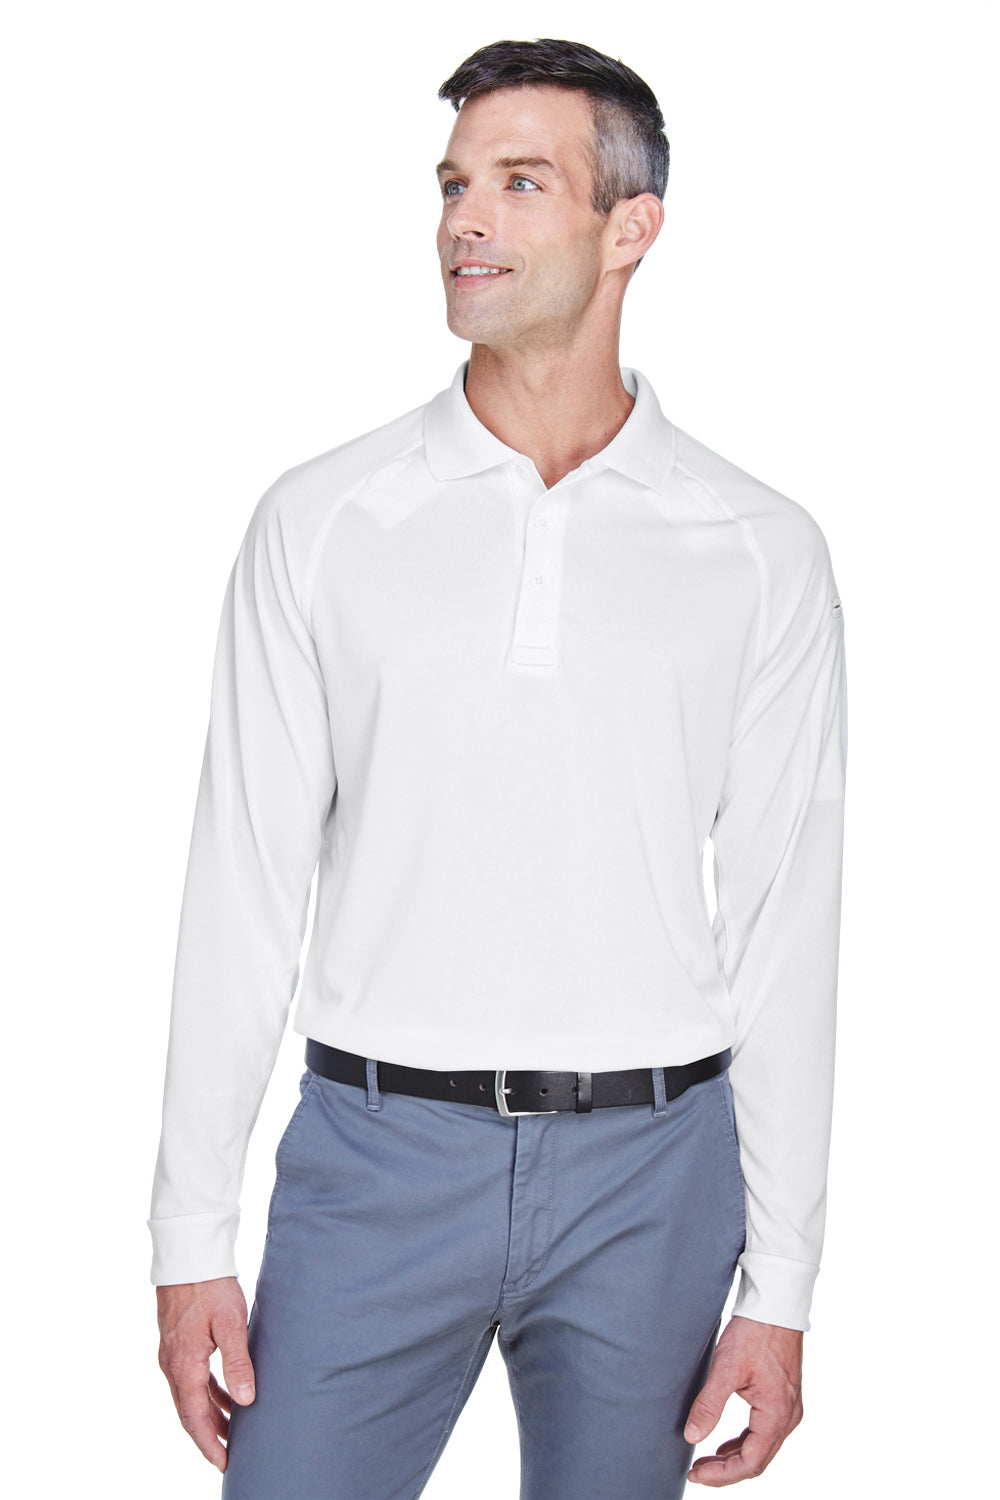 Harriton M211L Mens Advantage Tactical Moisture Wicking Long Sleeve Polo Shirt White Front